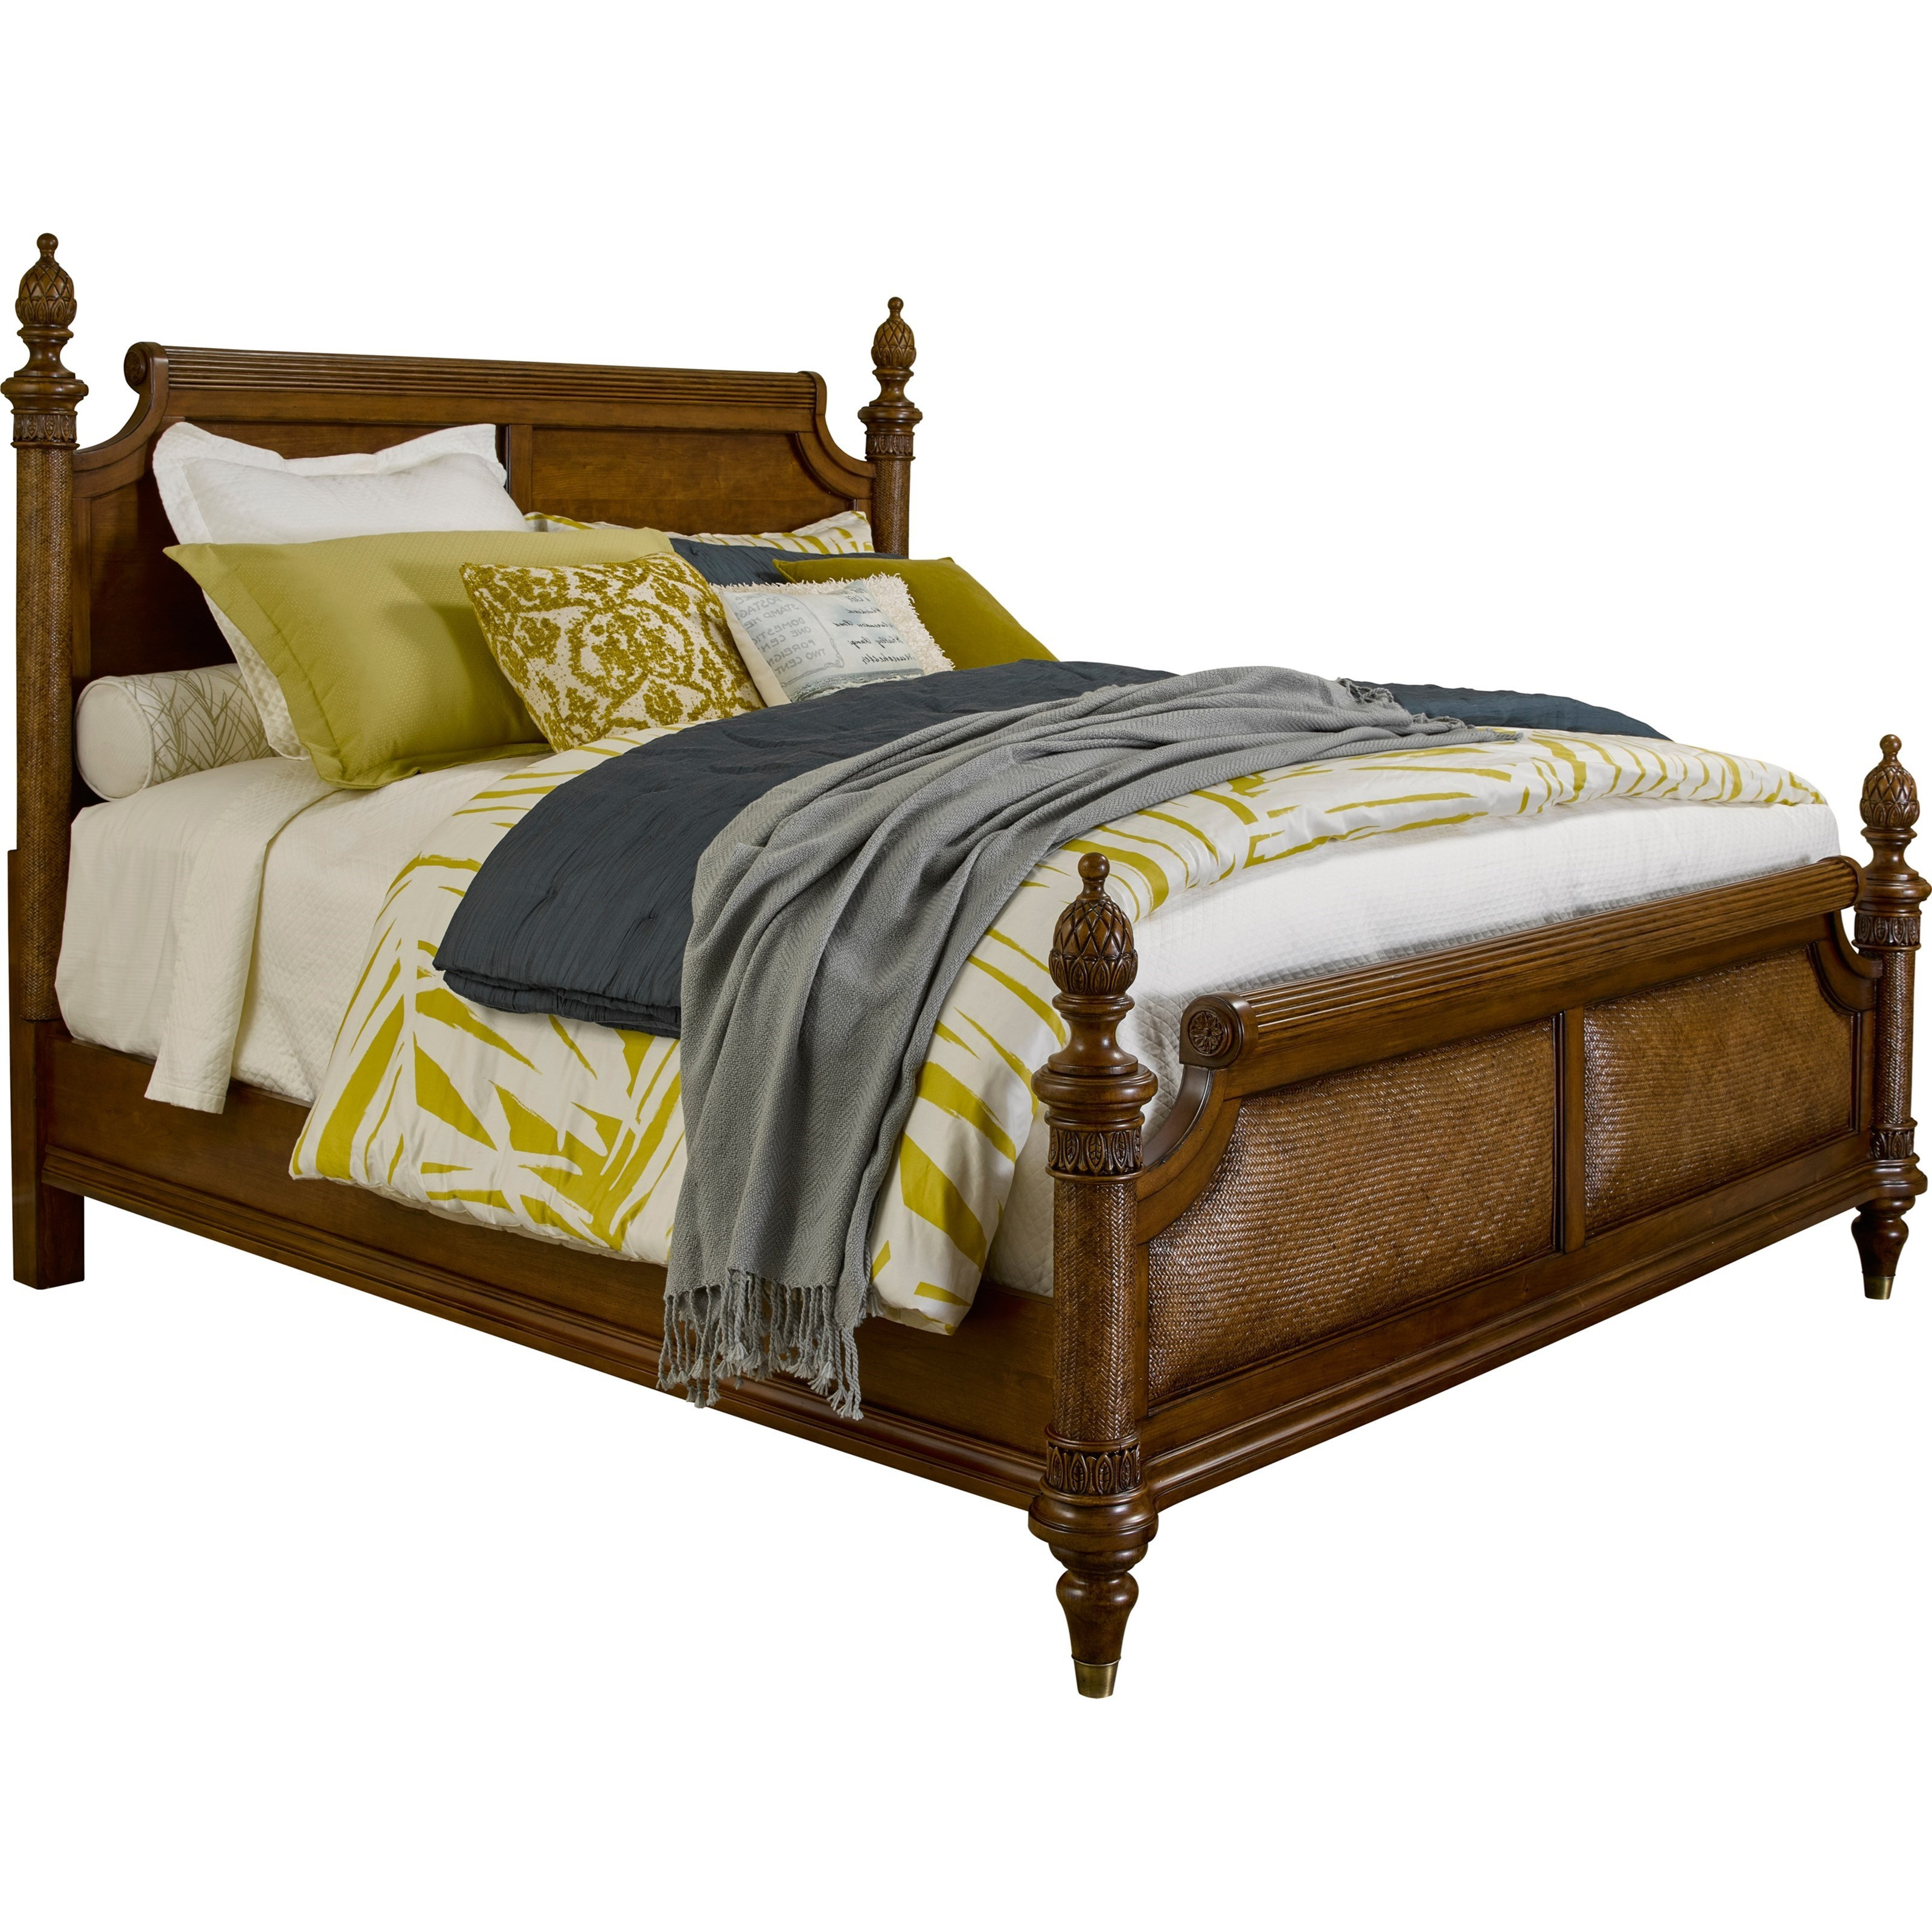 Broyhill Furniture Amalie Bay King Panel Bed - Item Number: 4548-252+253+450